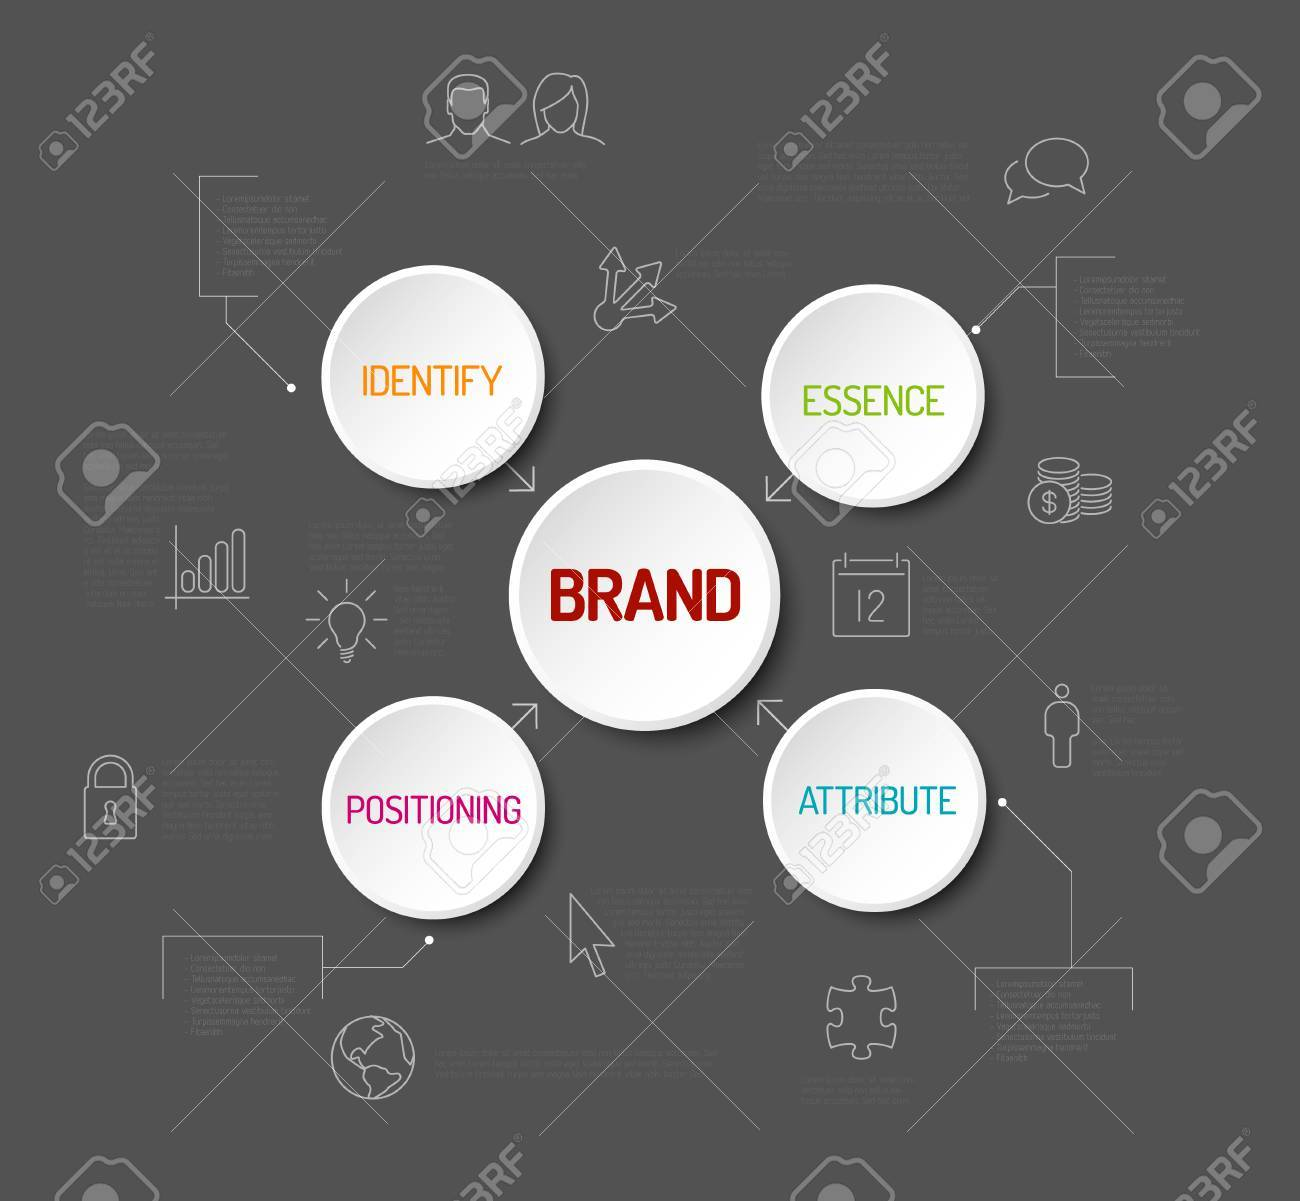 Brand concept schema diagram with white buttons icons and brand concept schema diagram with white buttons icons and description on a dark background stock ccuart Images